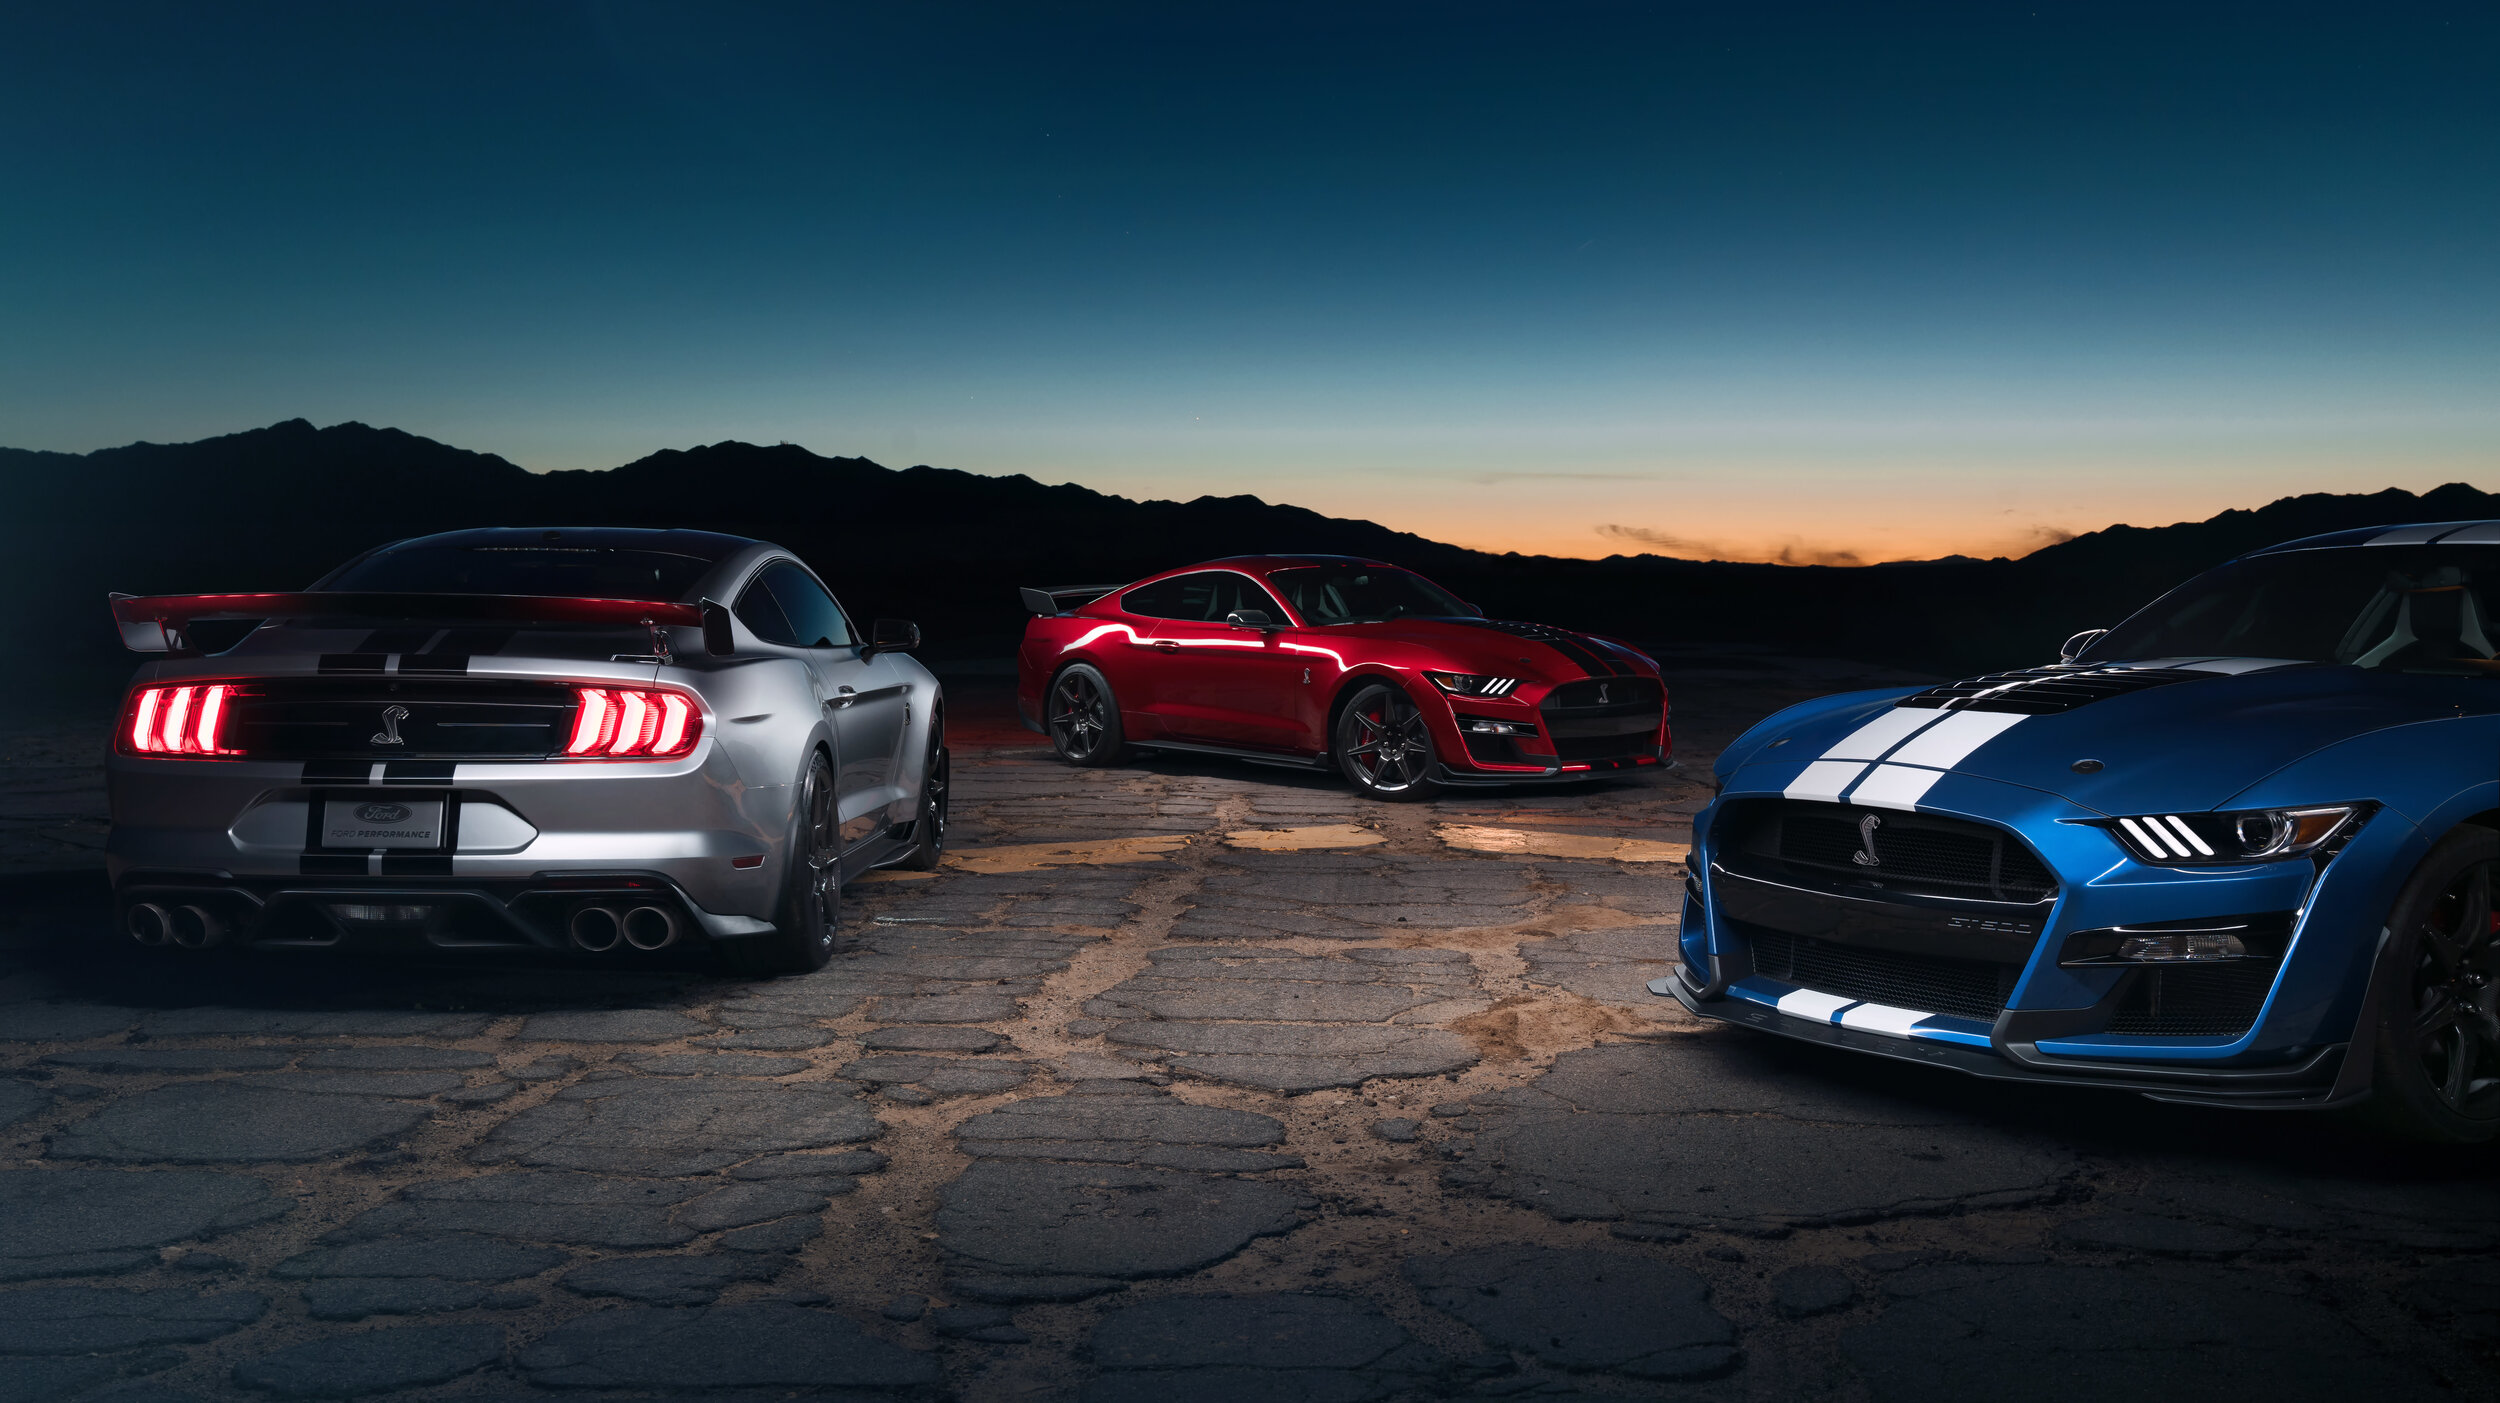 2020-ford-mustang-shelby-gt500s.jpg